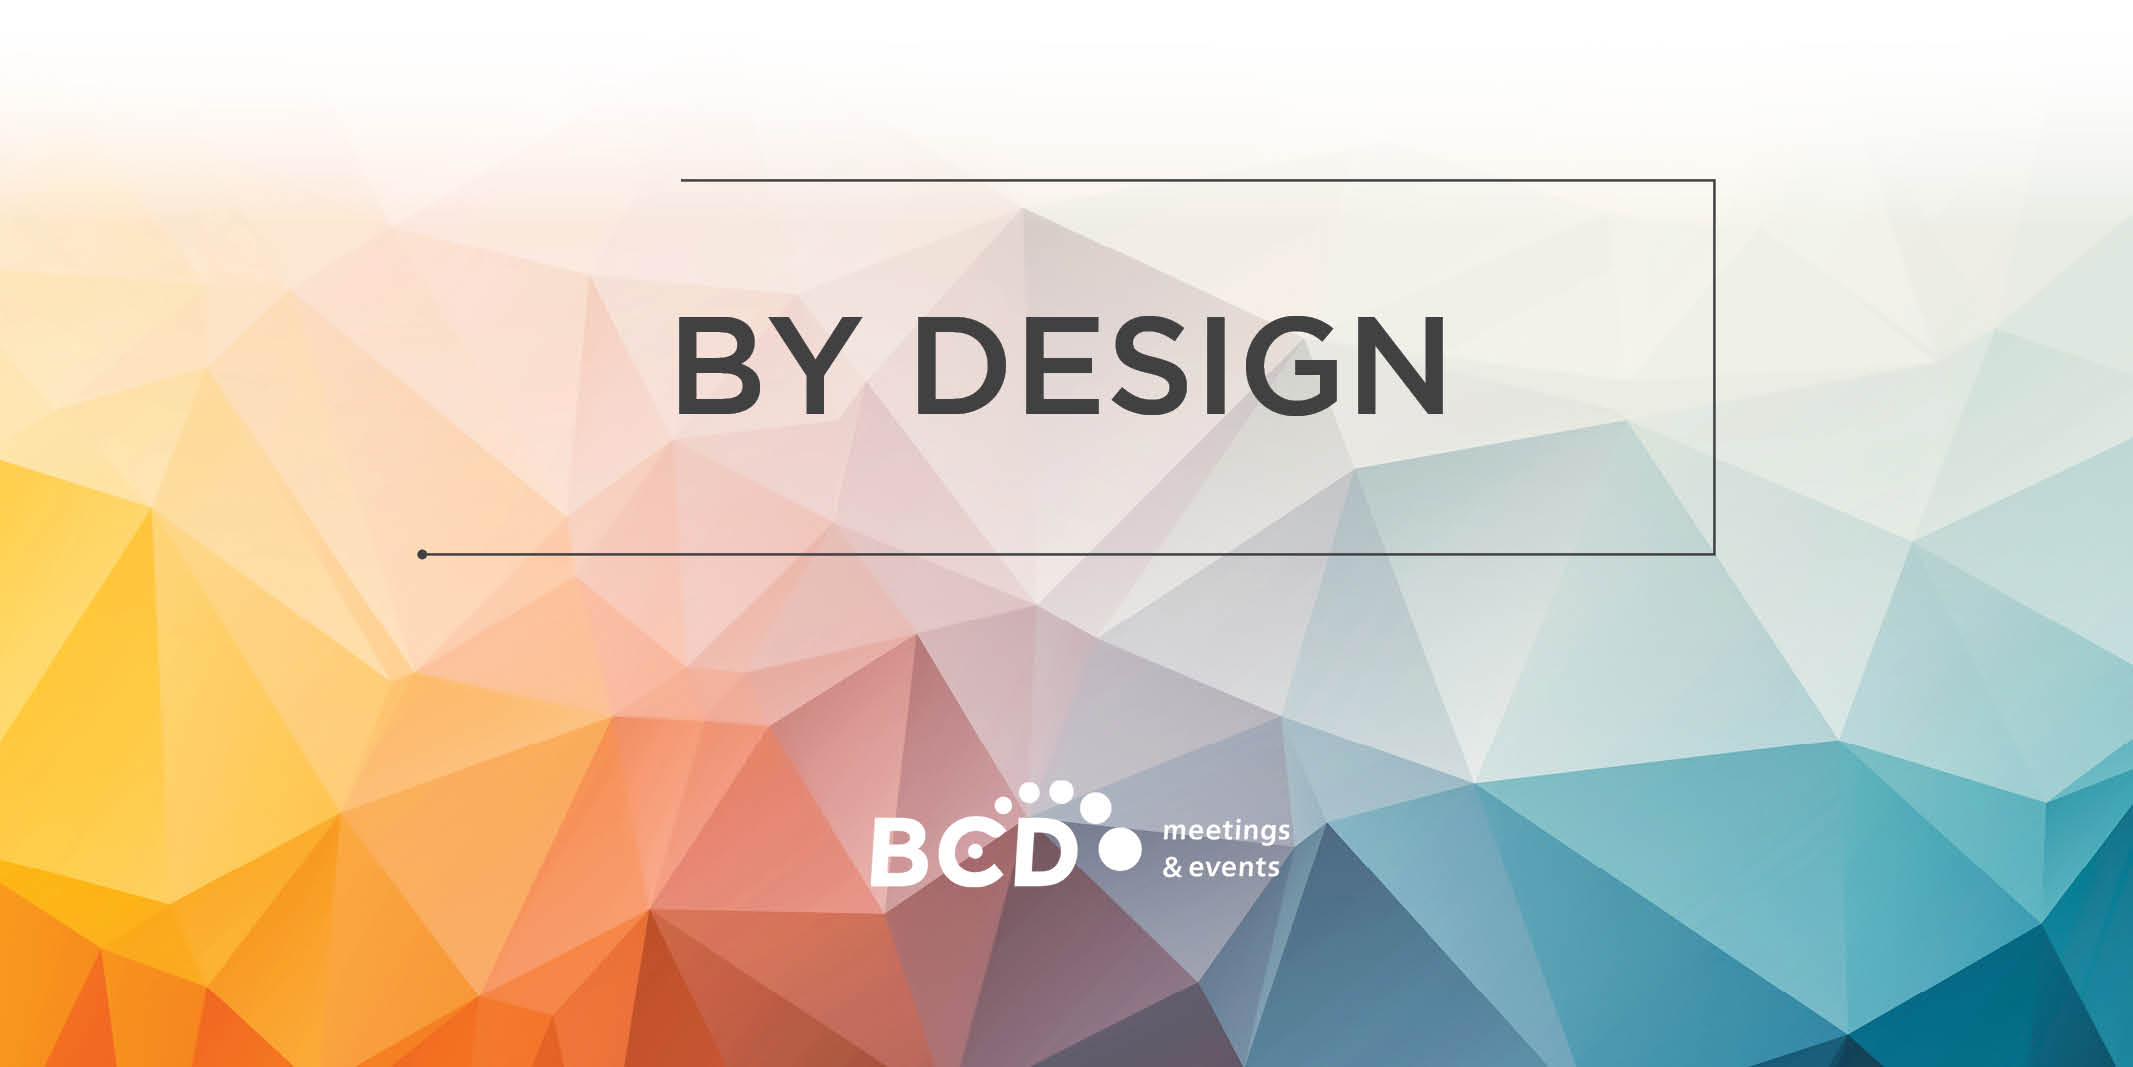 Corporate Events Trends and Innovation Report | Global Agency, BCD Meetings & Events